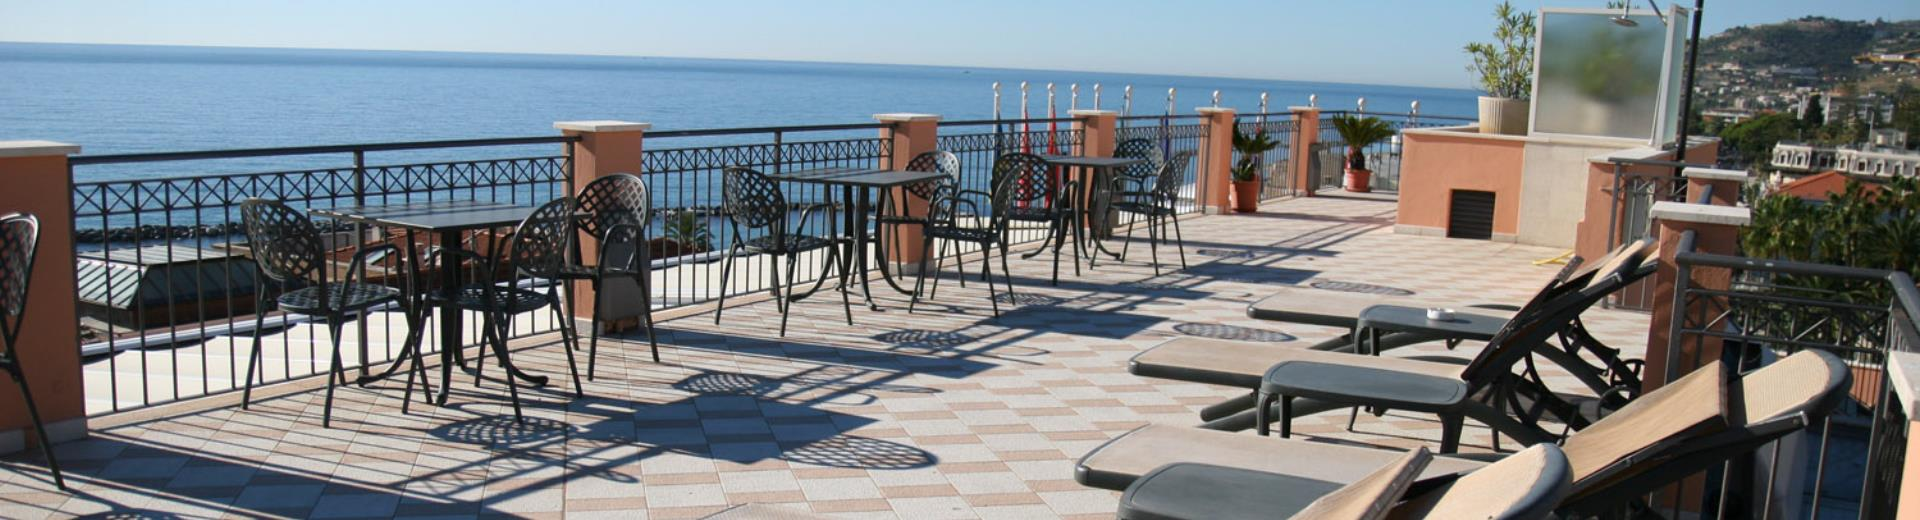 The terrace of Best Western Hotel Nazionale is equipped to make you relax